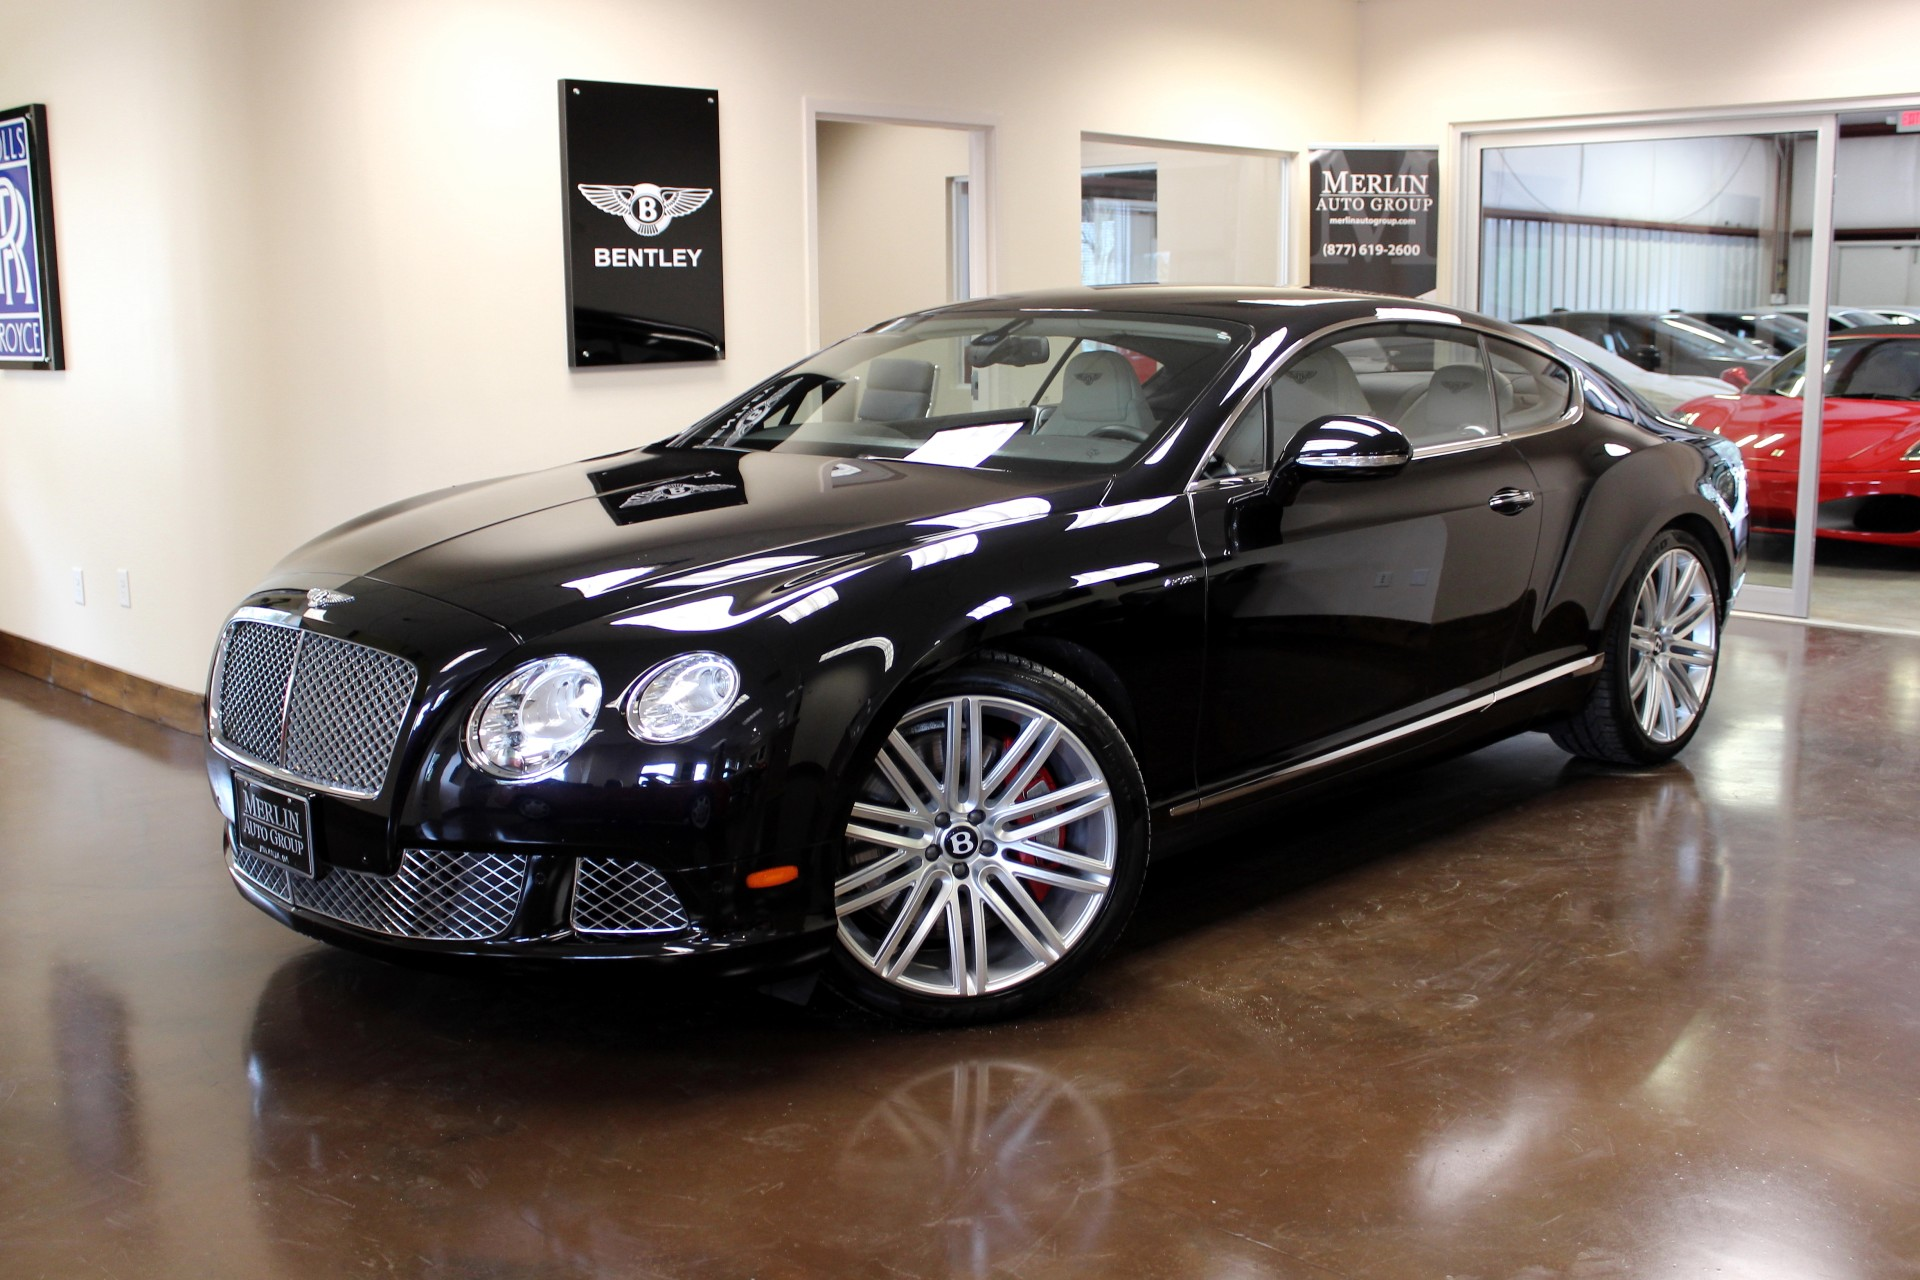 used bentley continental gt for sale chattanooga tn cargurus. Black Bedroom Furniture Sets. Home Design Ideas